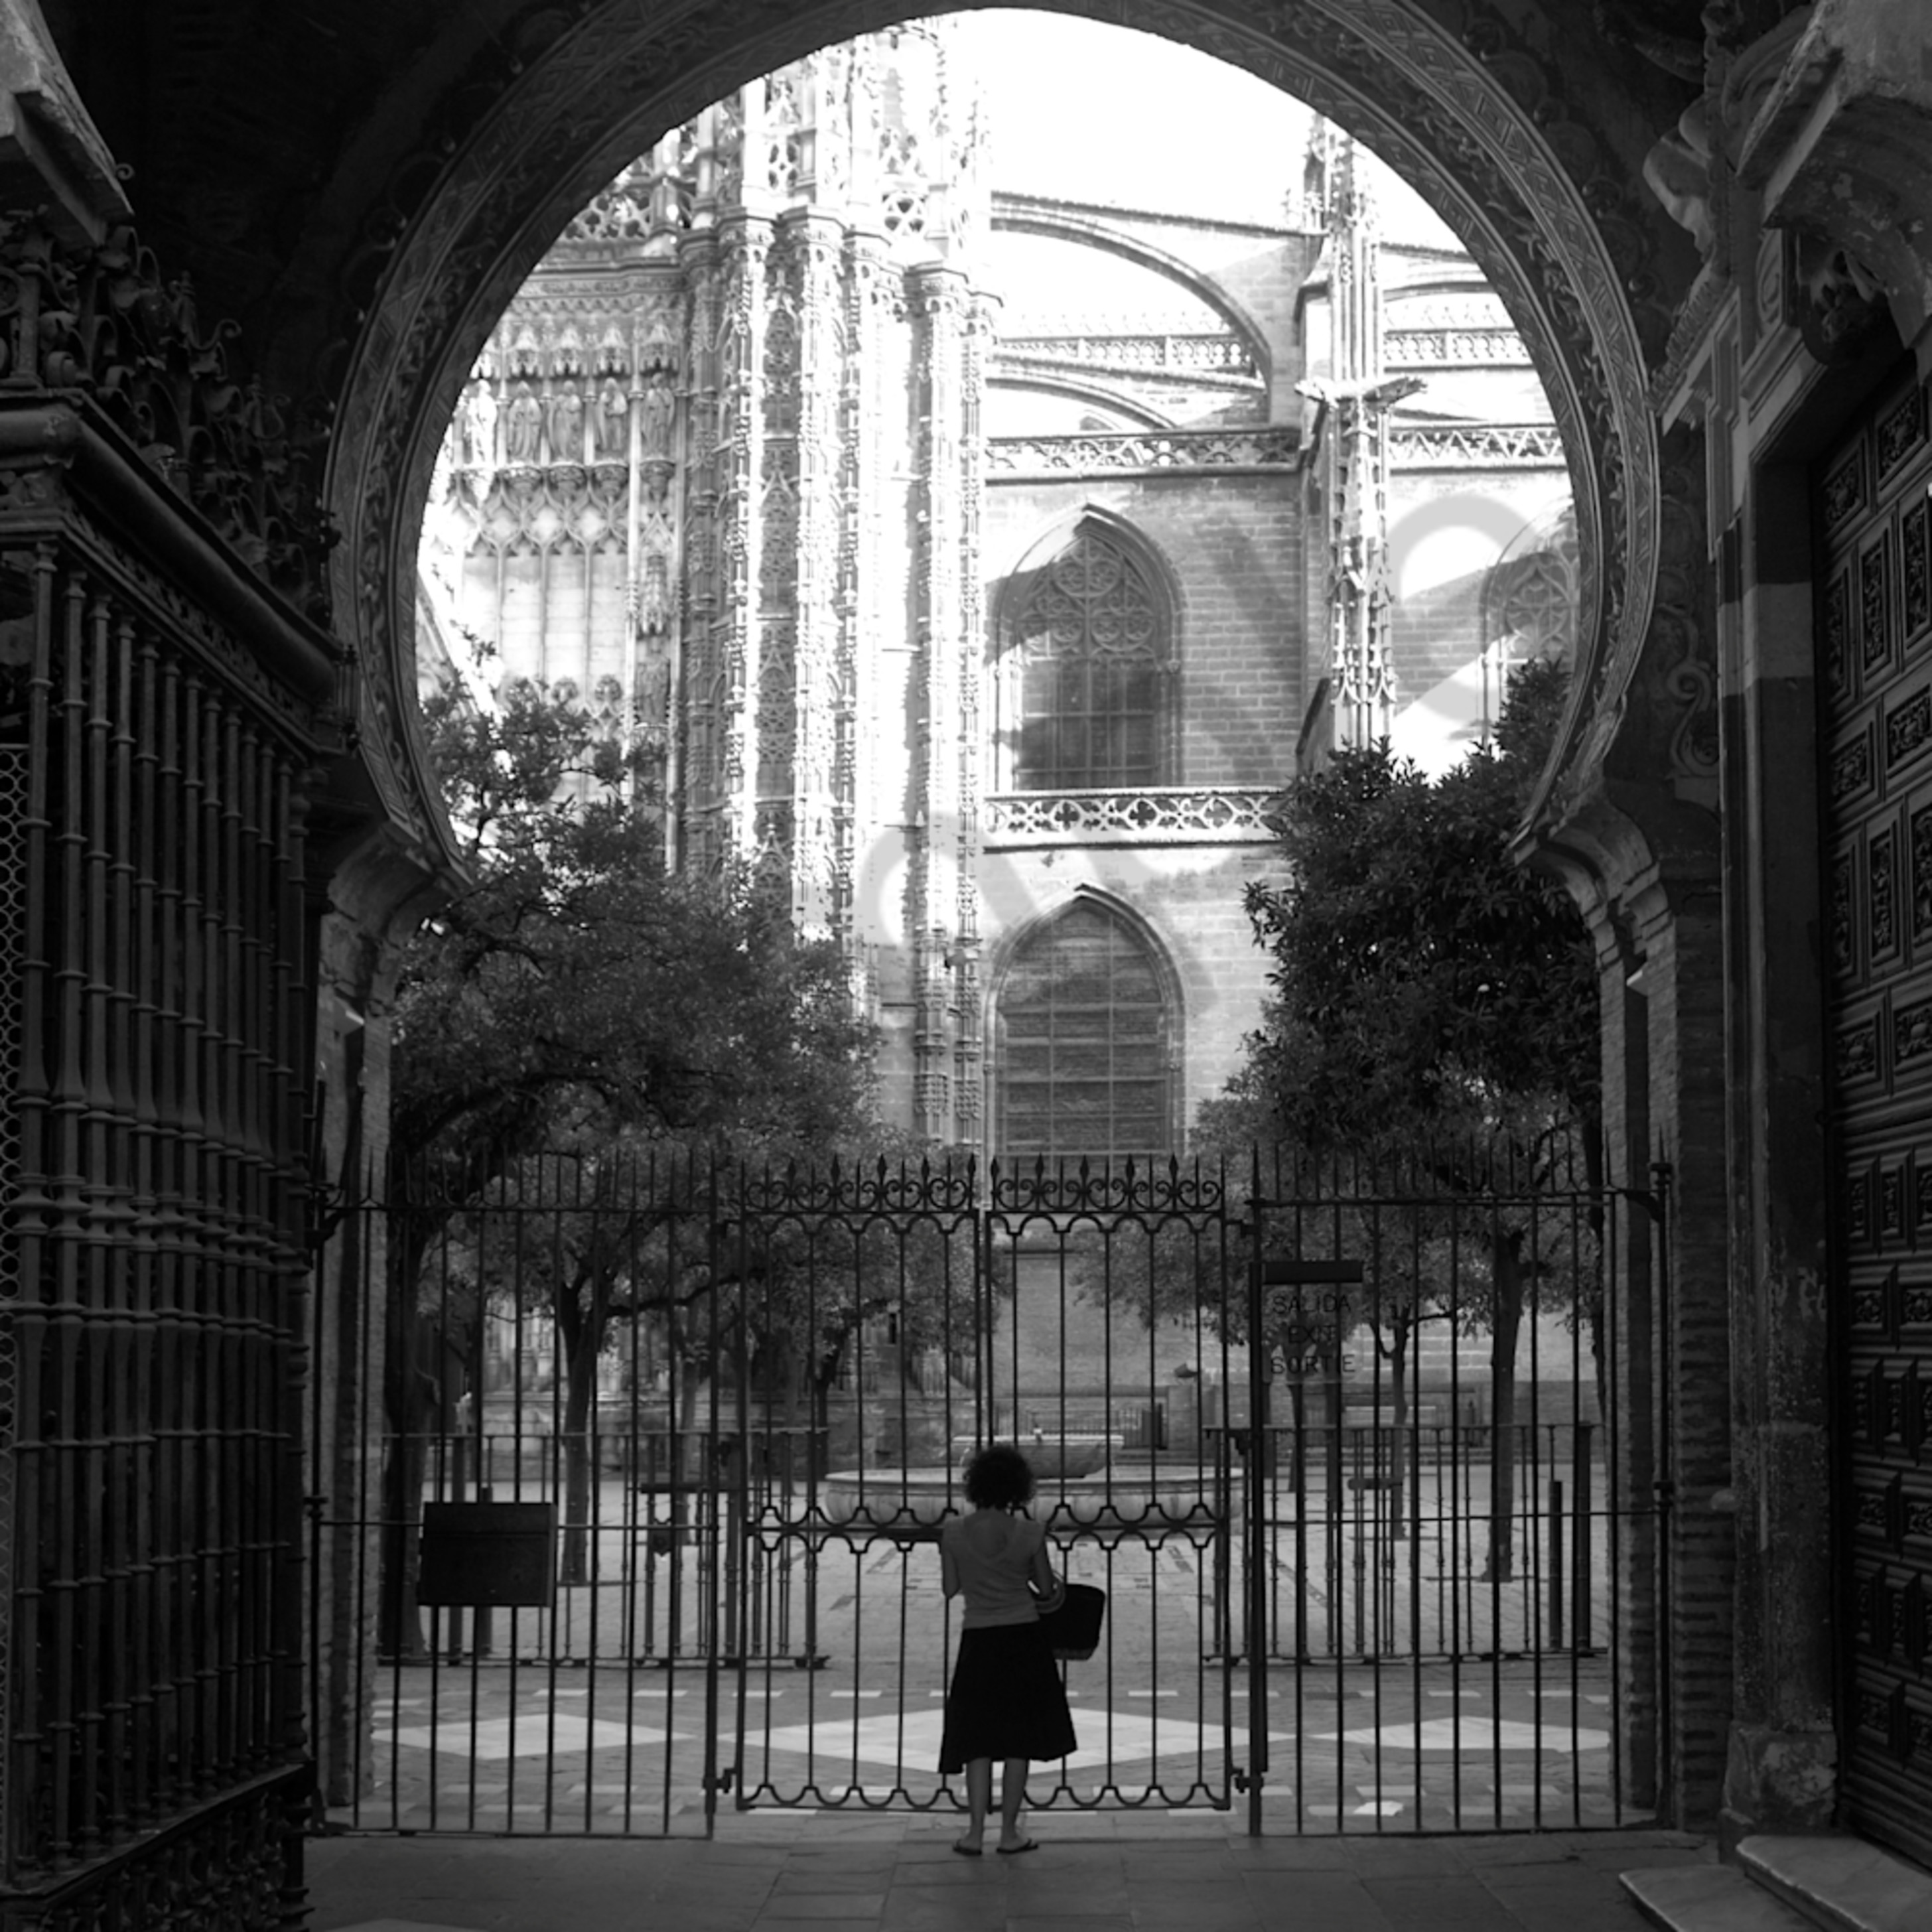 At the gate rduco8